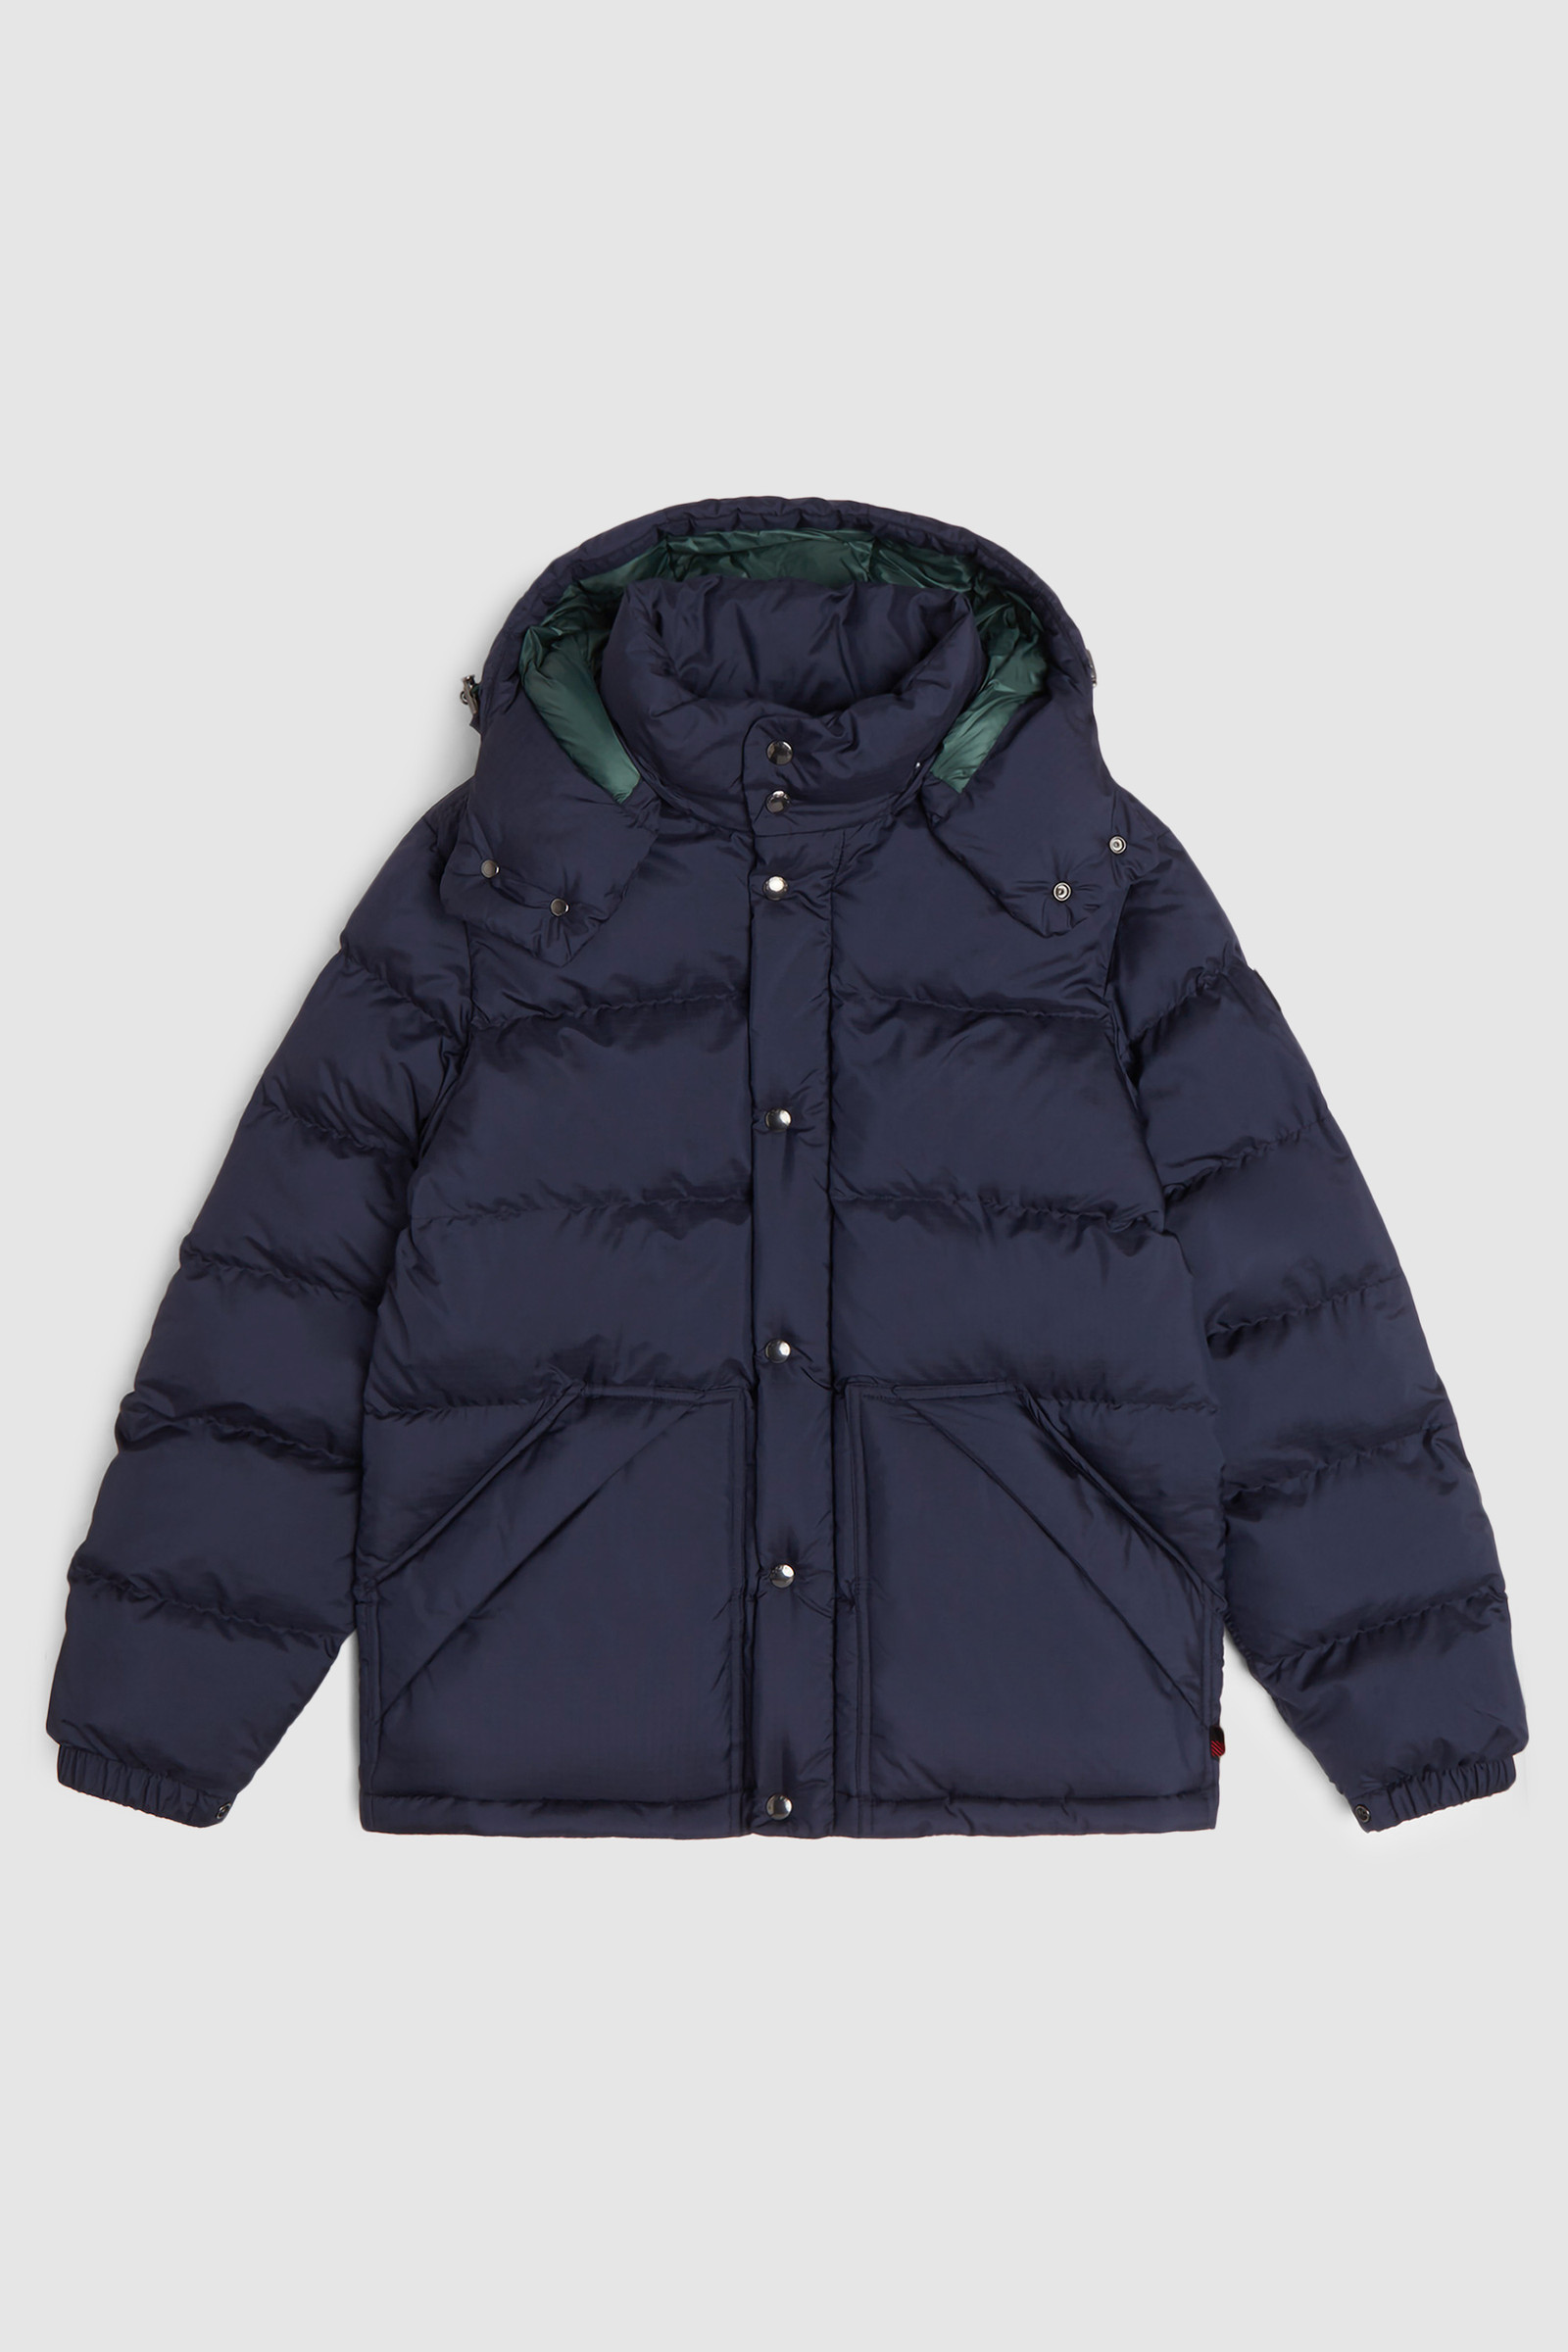 Sierra Supreme Jacket